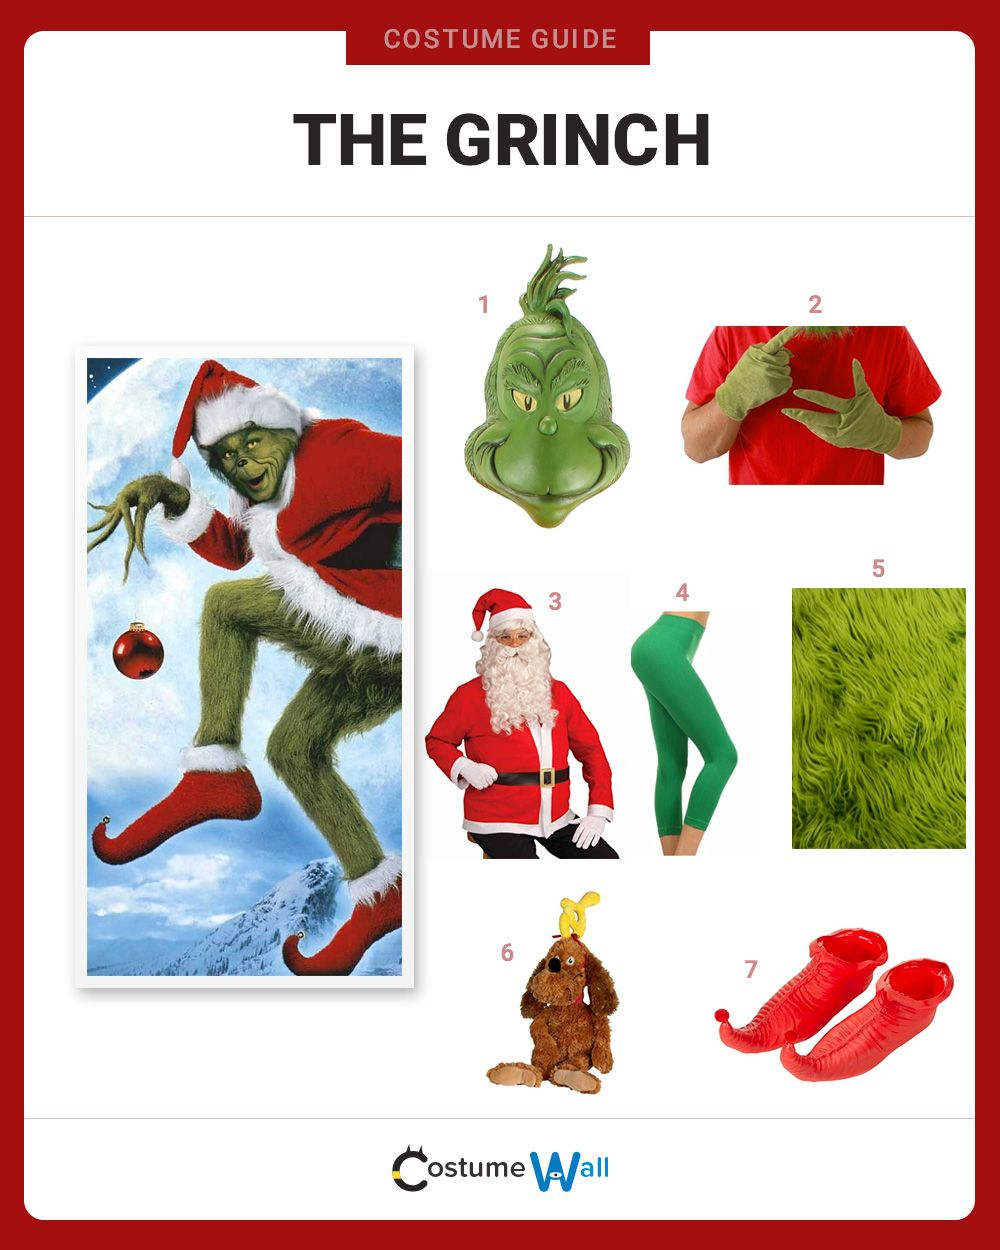 Dress Like The Grinch | Costume and Cosplay Guide | Pinterest ...